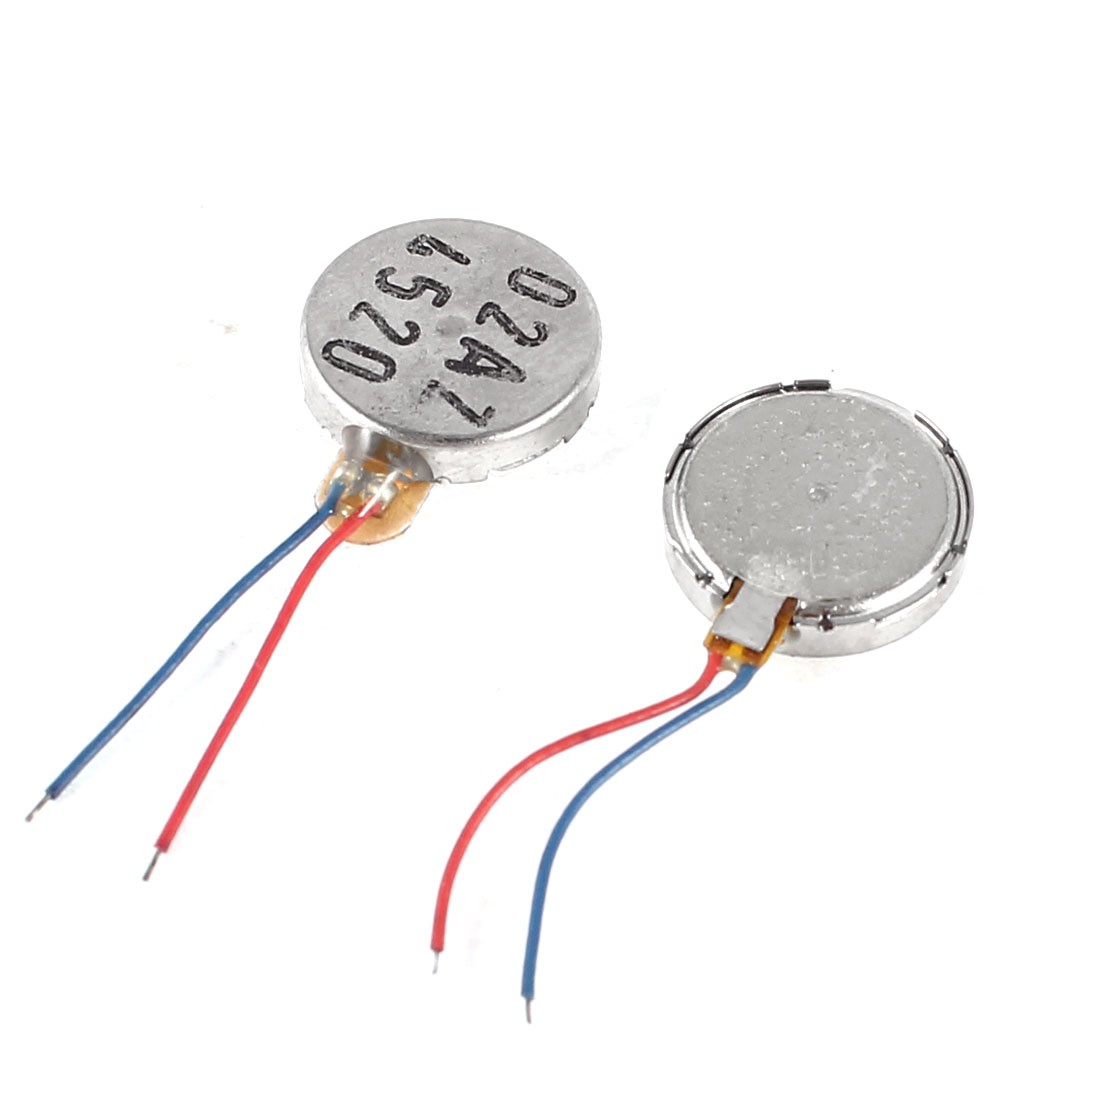 2-Pcs-DC-3V-12mm-x-3mm-Cell-Phone-Coin-Flat-Vibrating-Vibration-Mini-Motor